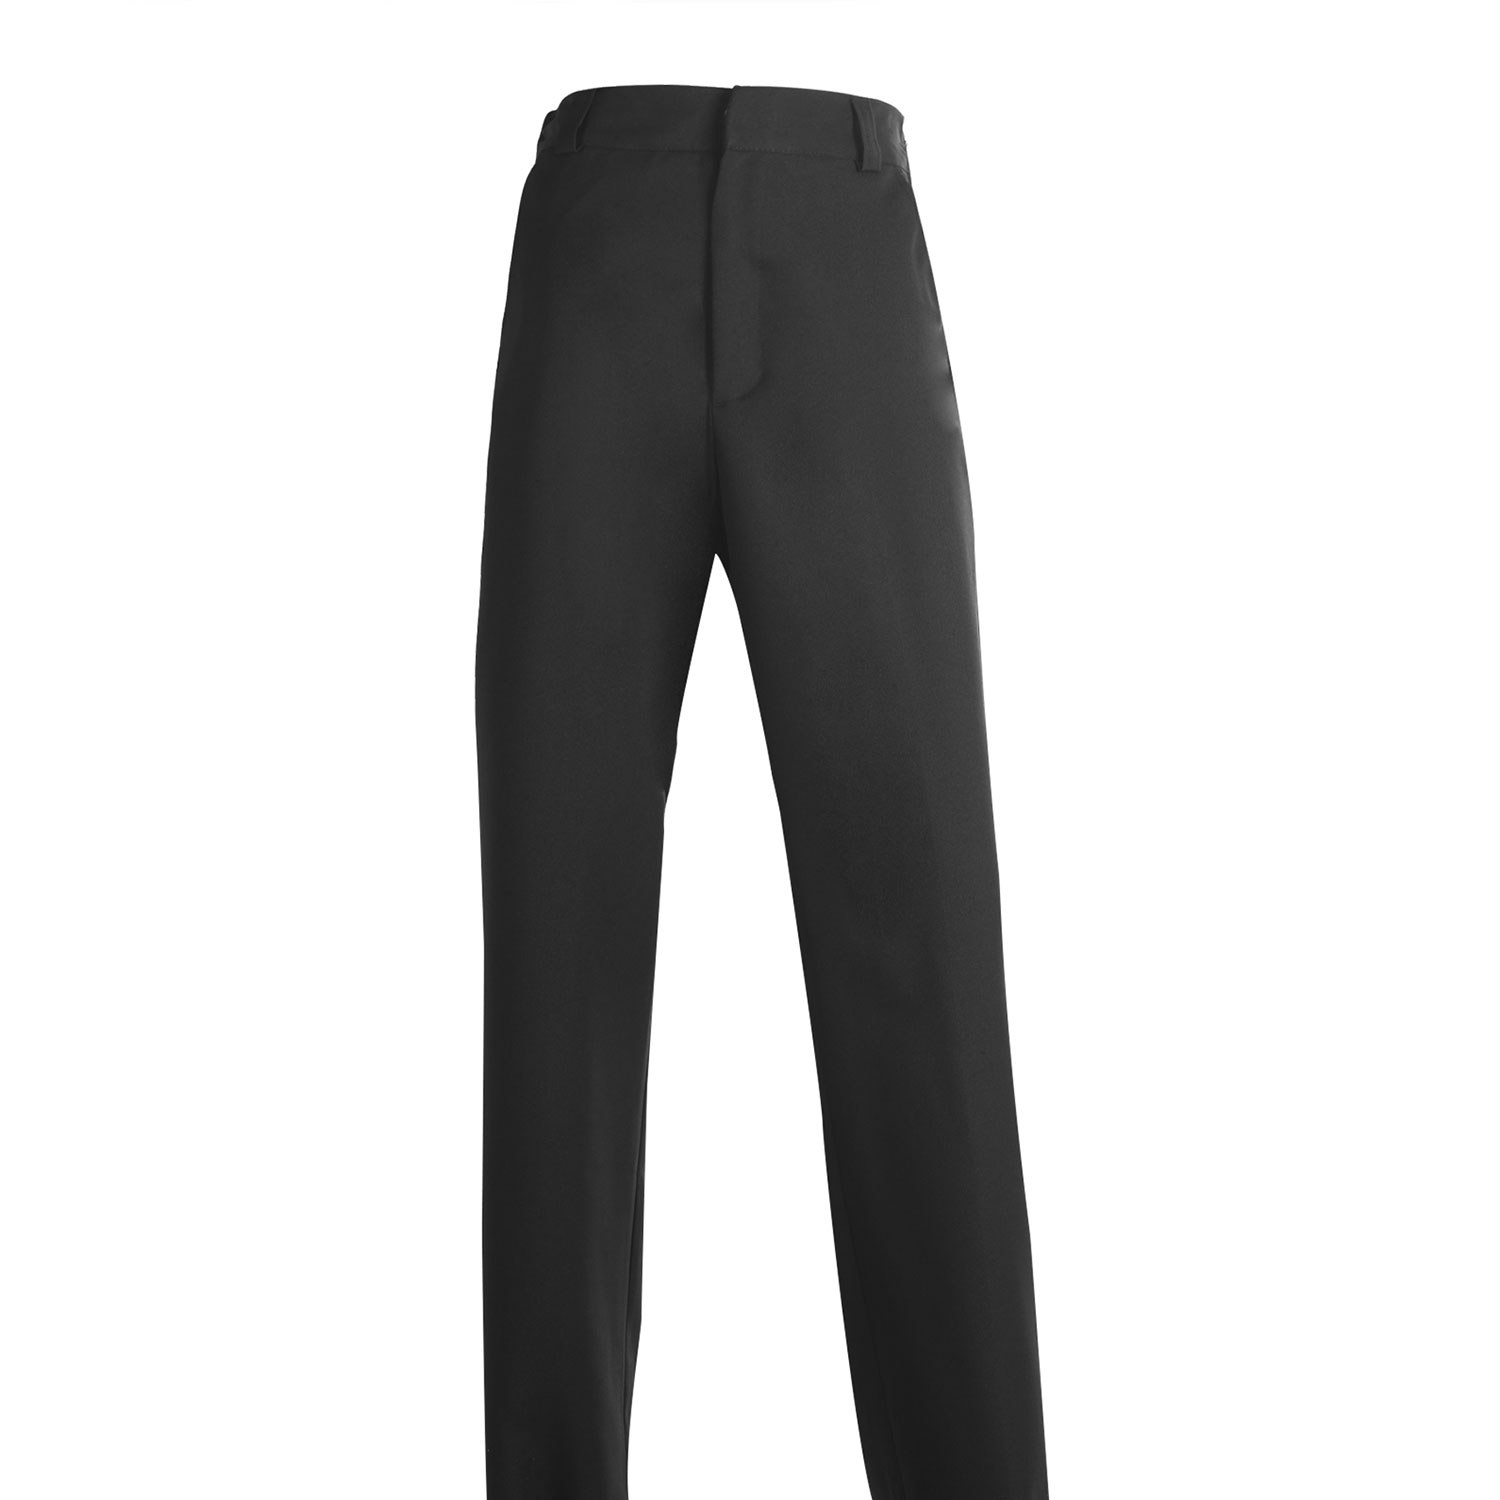 LawPro Women's 100% Polyester Uniform Trousers